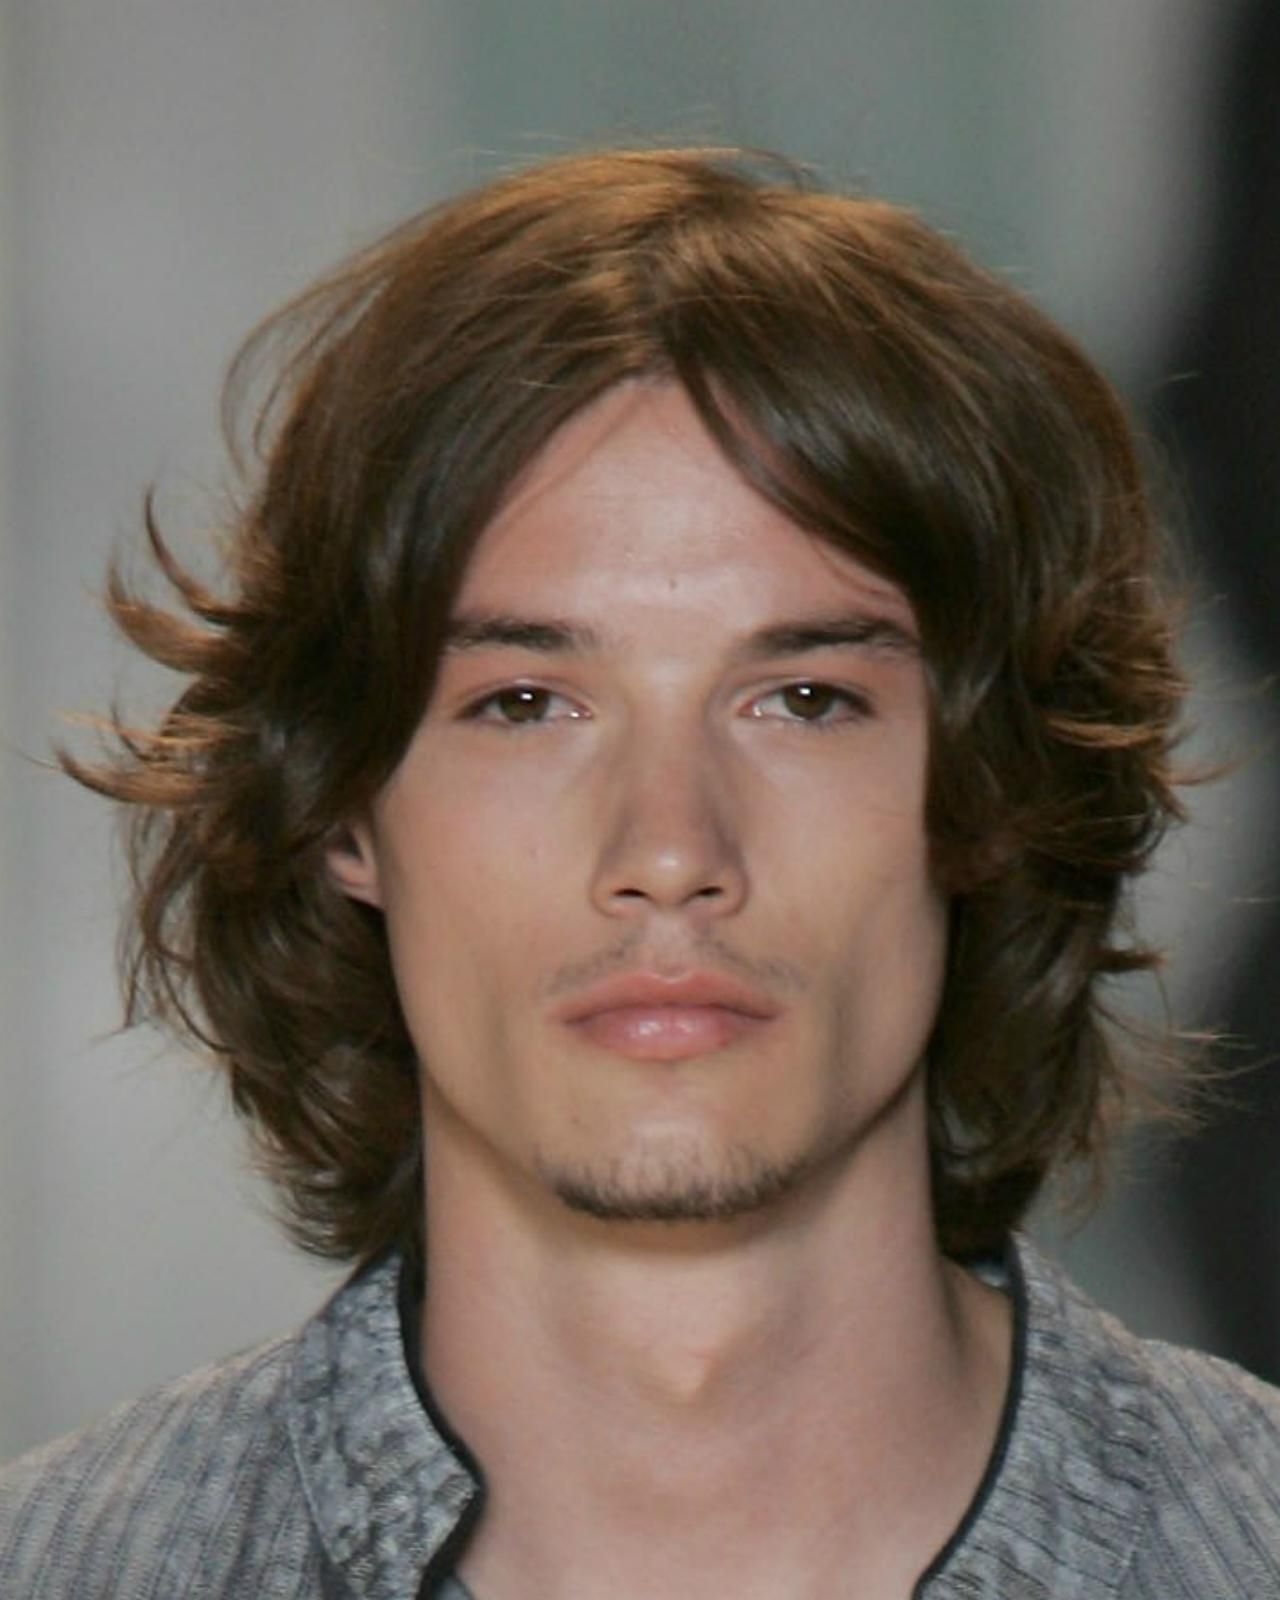 Recent Straight Shaggy Locks Long Hairstyles With Regard To Long Hairstyles For Men Picture Gallery (View 18 of 20)